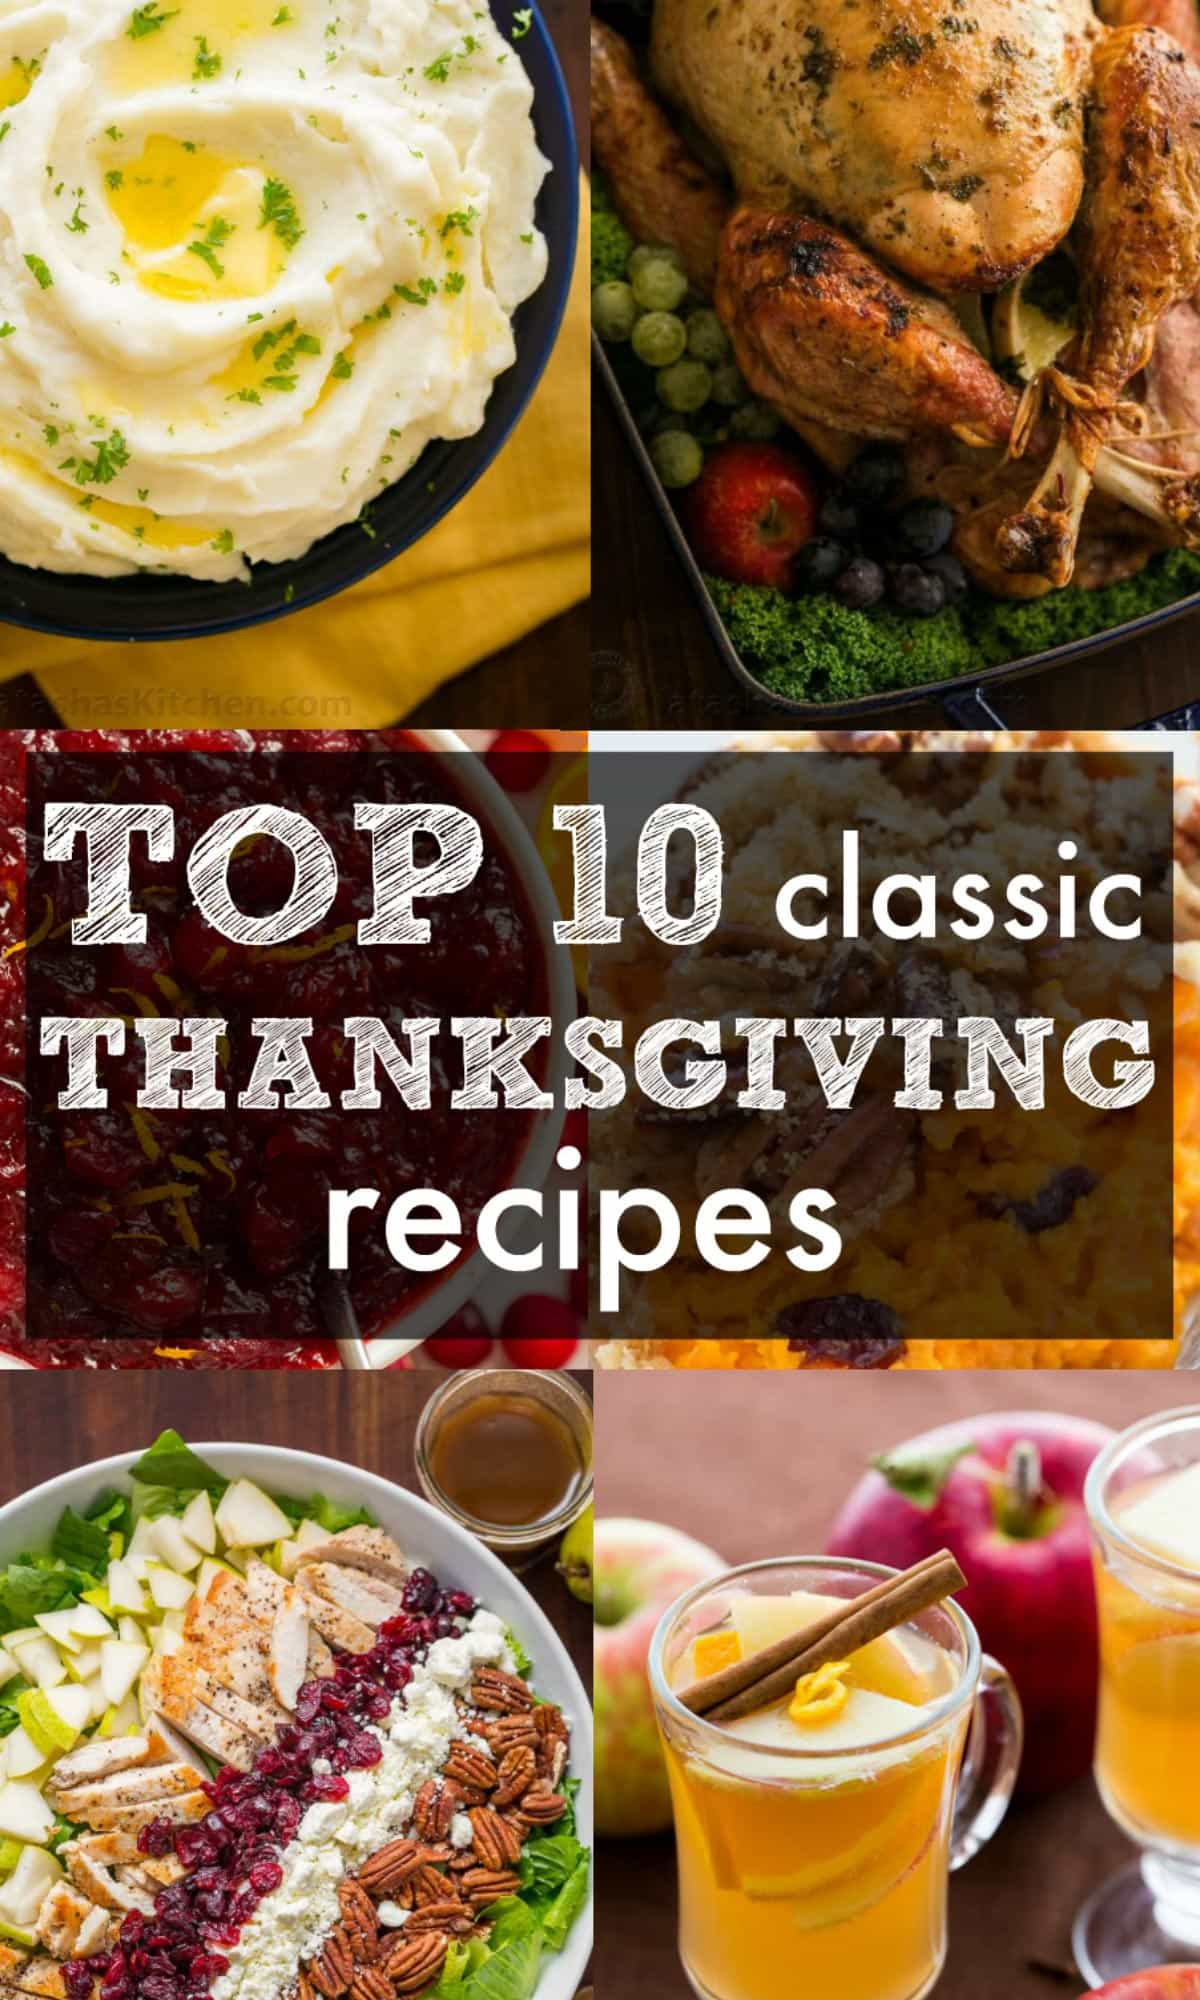 The Kitchen Thanksgiving Recipes  Our Top 10 Classic Thanksgiving Recipes NatashasKitchen